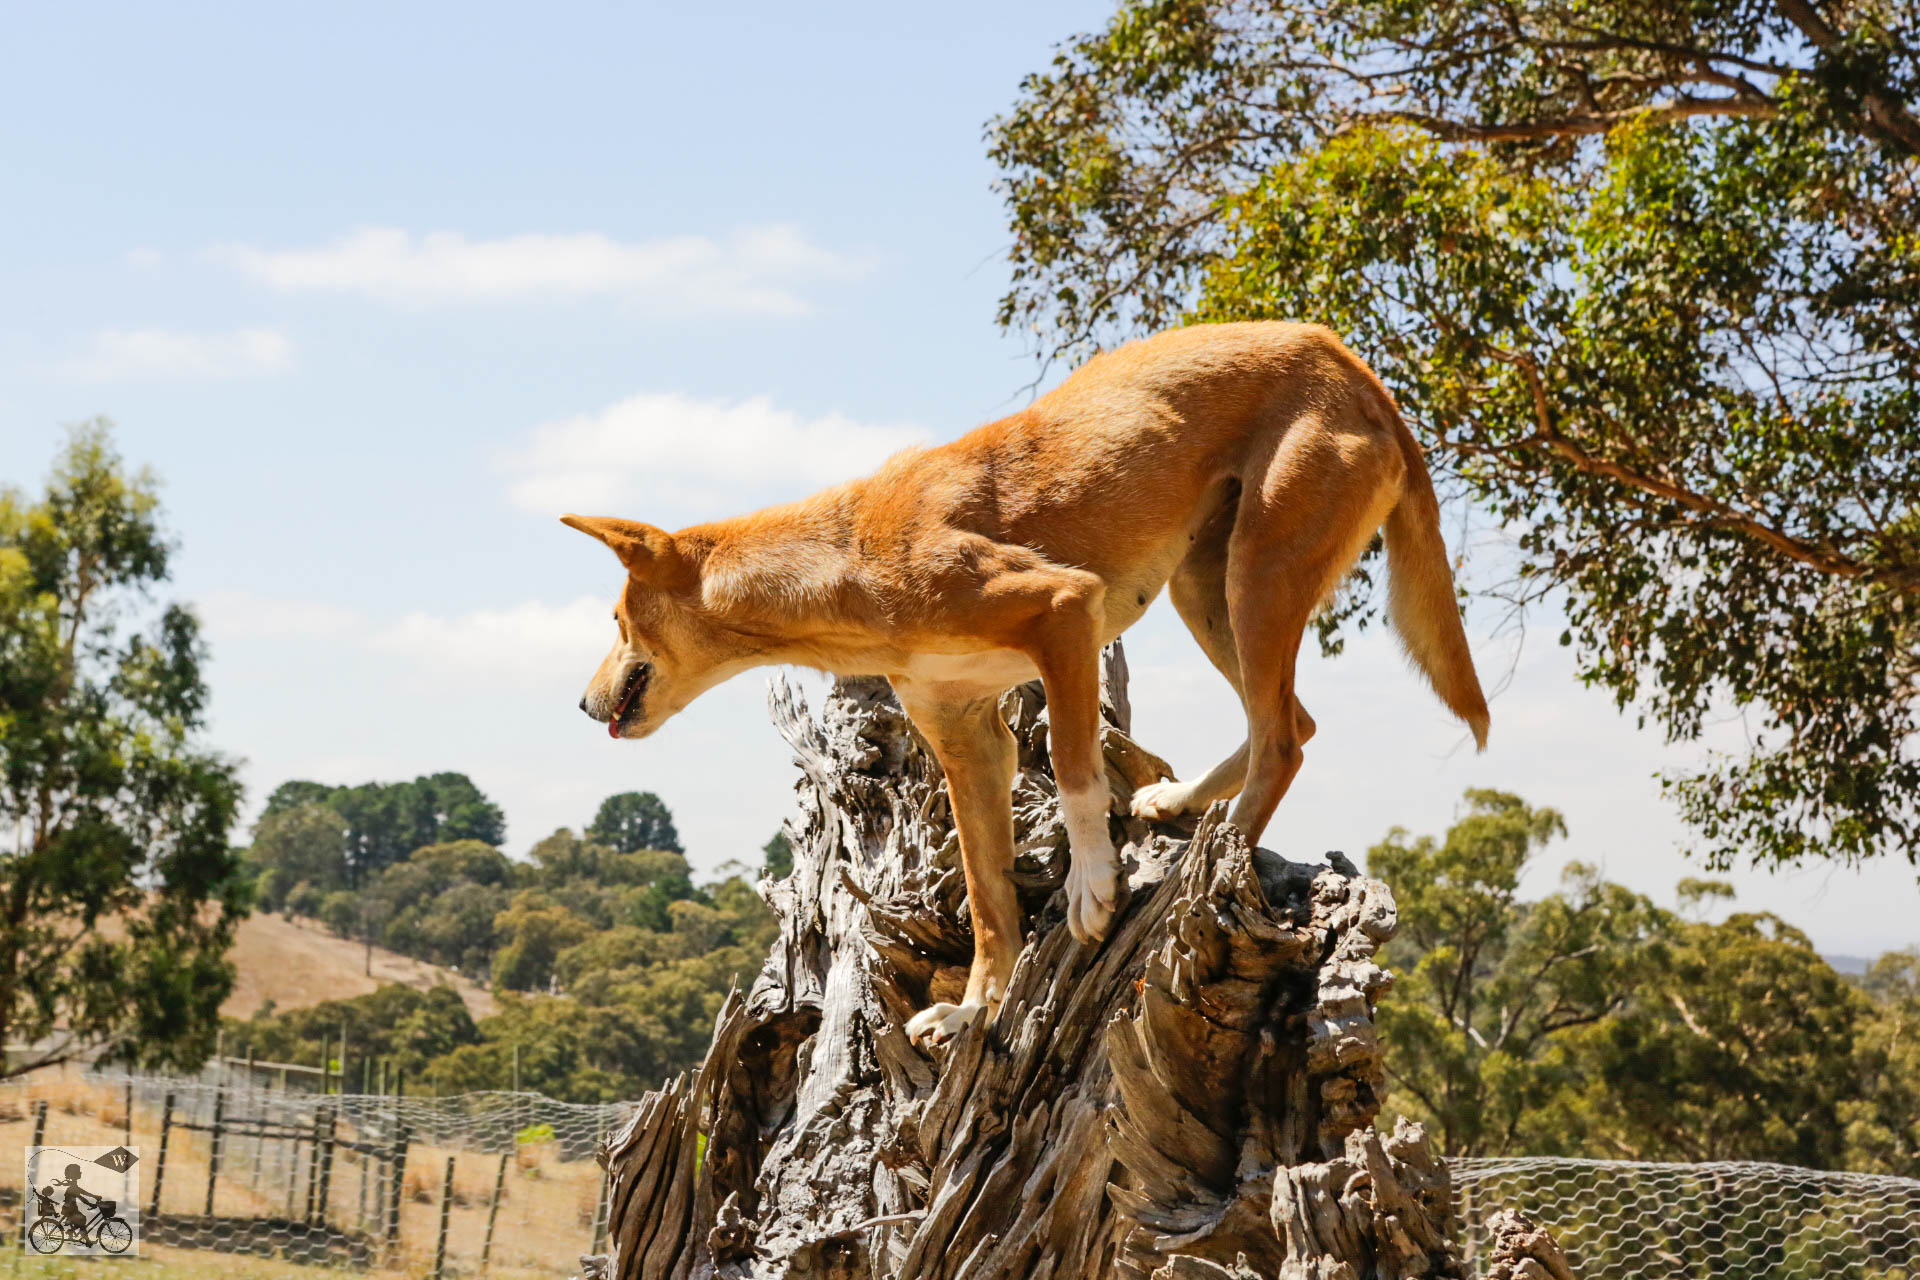 Mamma Knows West - Dingo Discovery Sanctuary (32 of 51).jpg